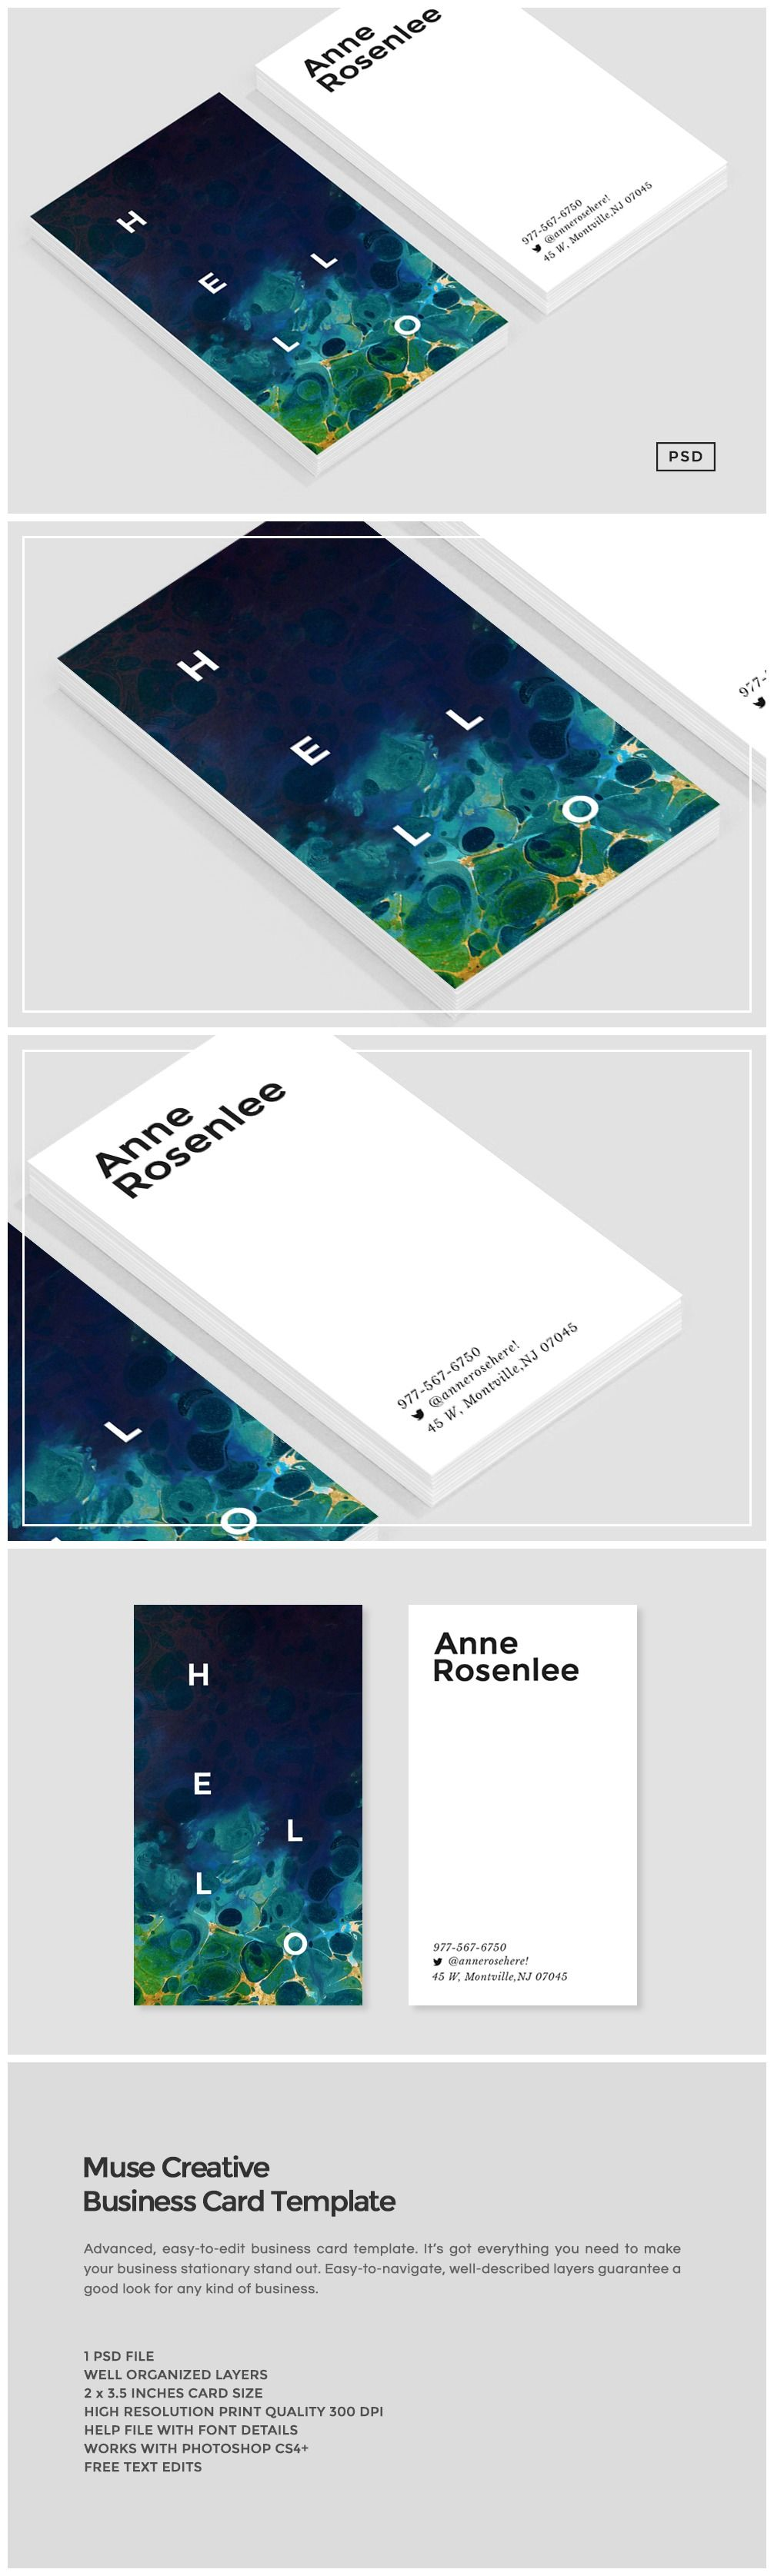 Muse Business Card Template Business Design Business Cards Creative